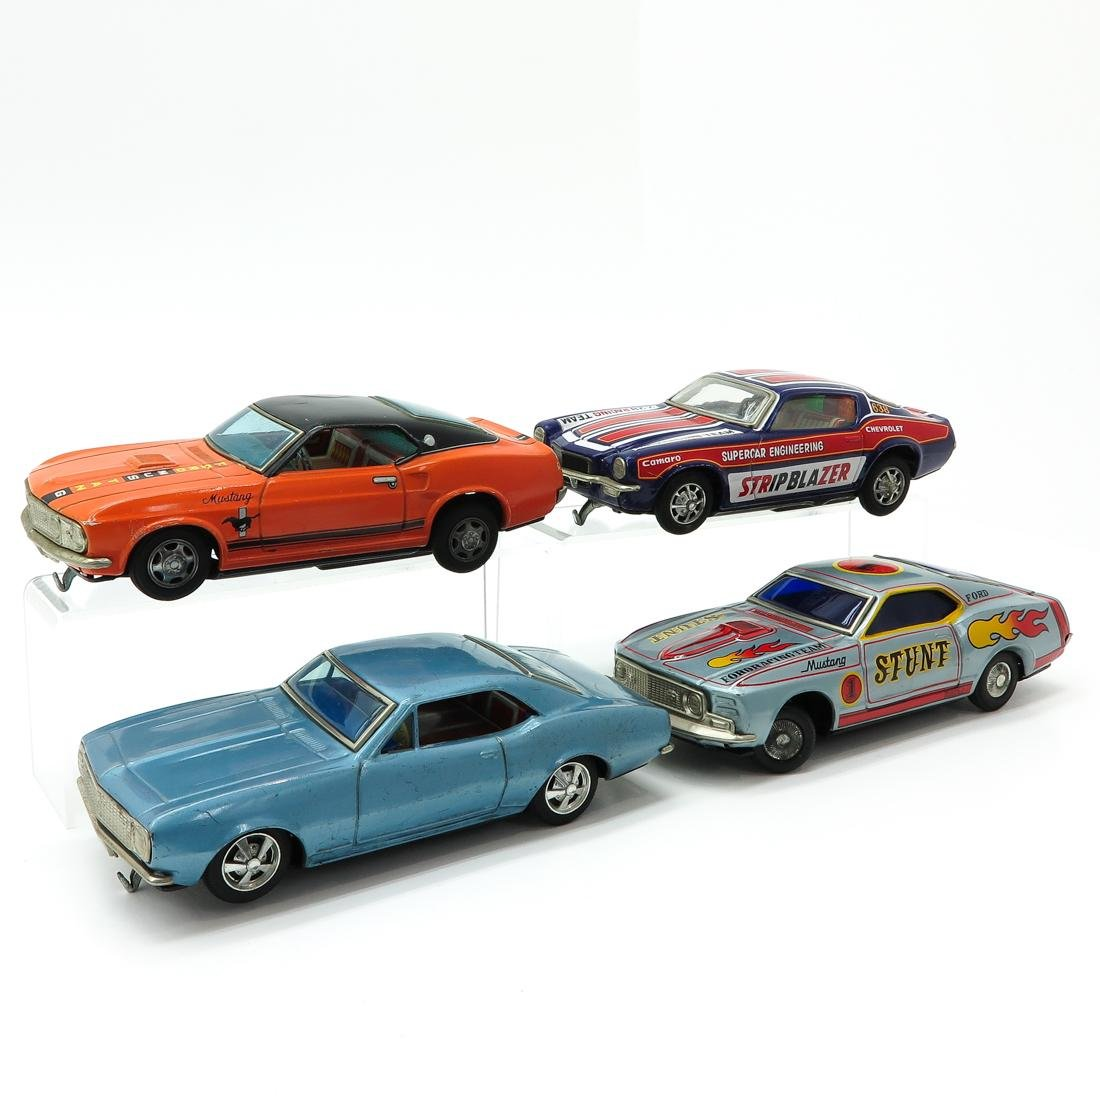 Lot of 4 Vintage Toy Cars - 2